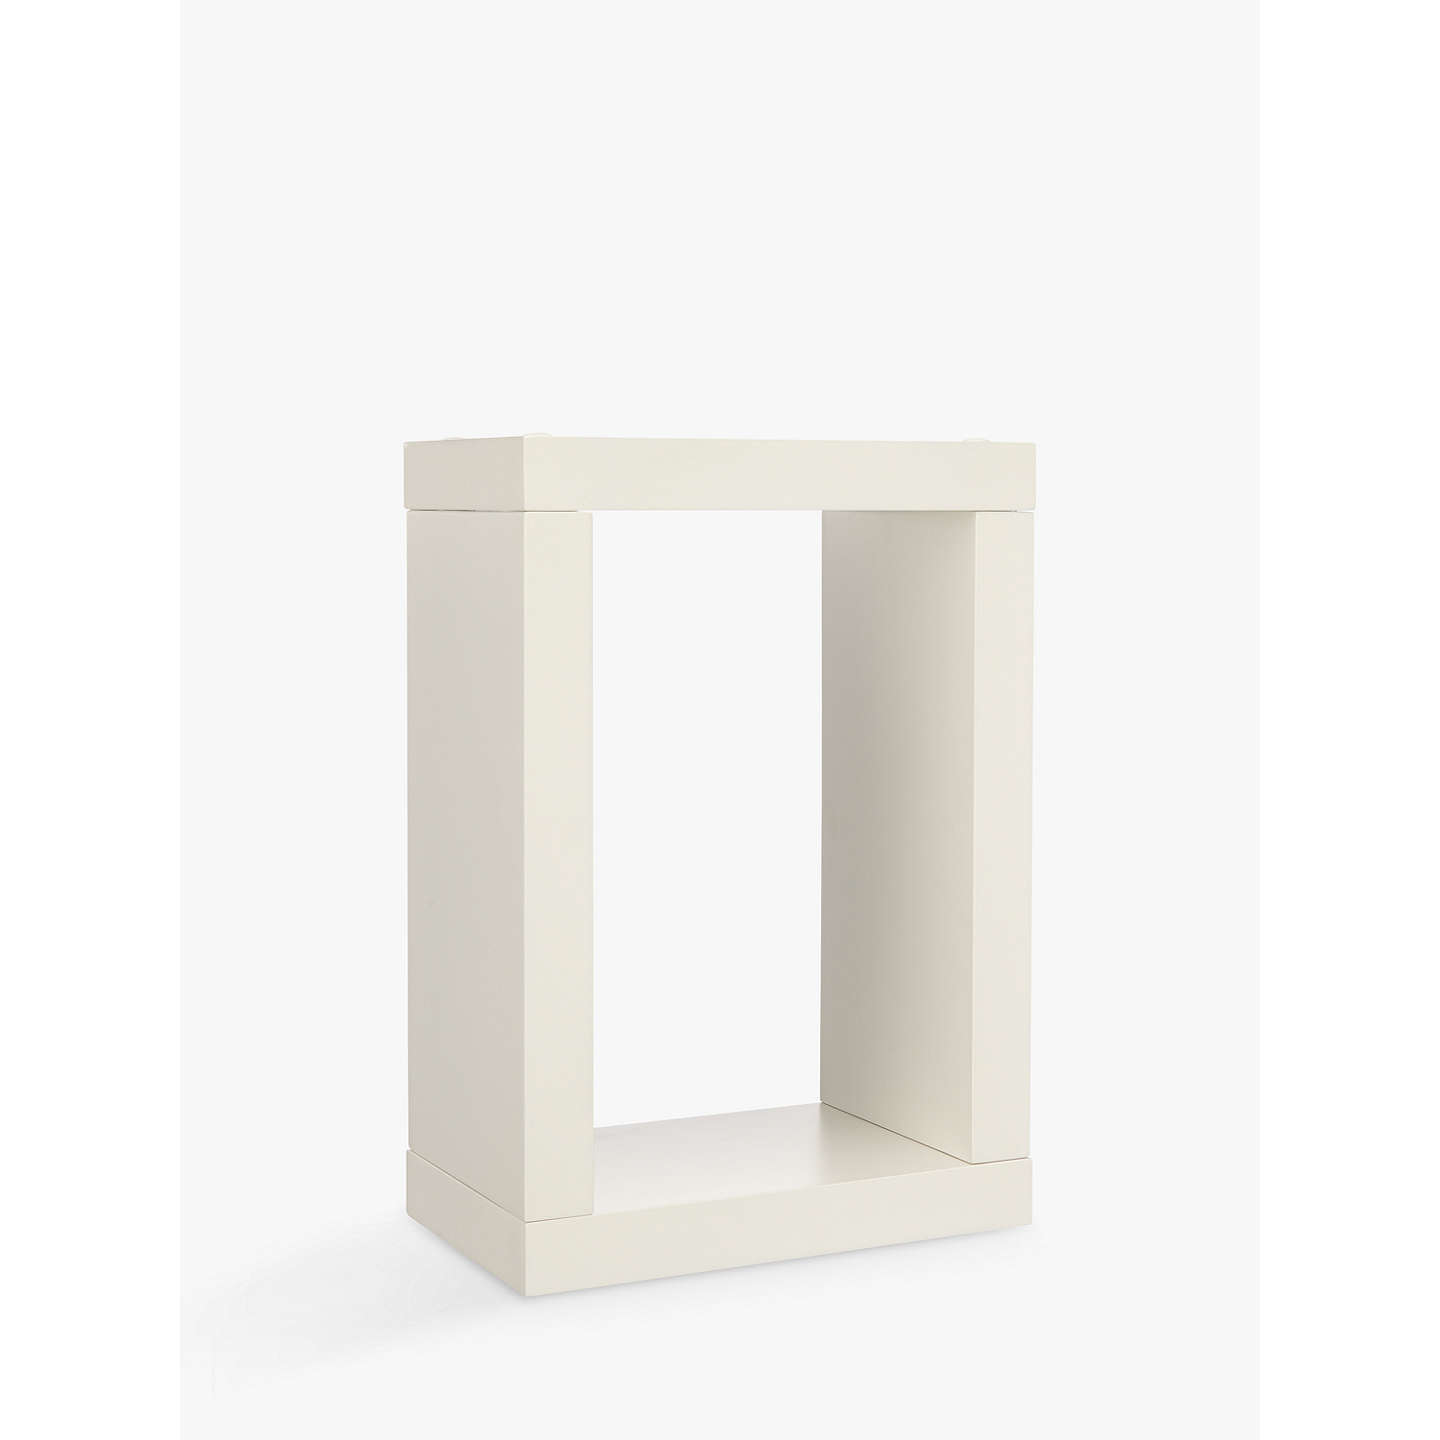 BuyHouse by John Lewis Form MDF Bathroom Box Shelf Online at johnlewis.com